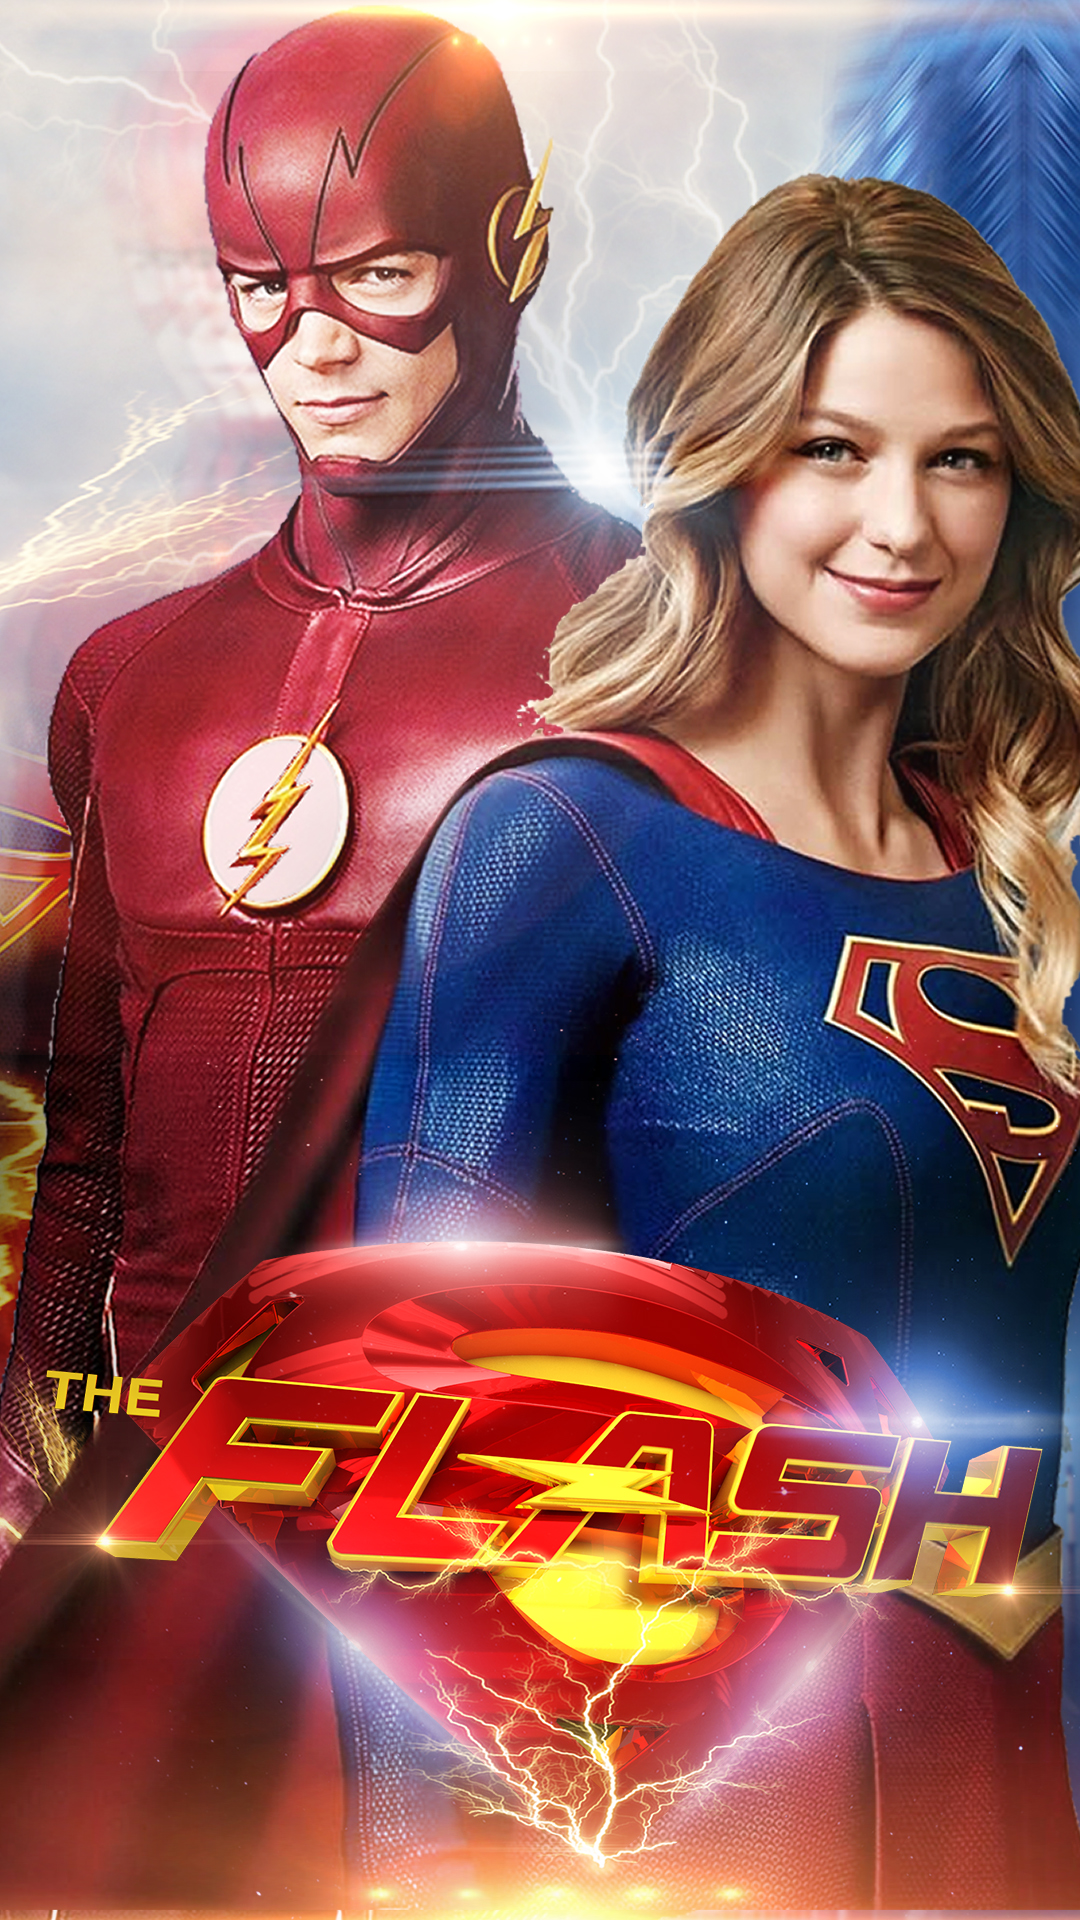 The Flash Supergirl Crossover Poster By Alex4everdn On